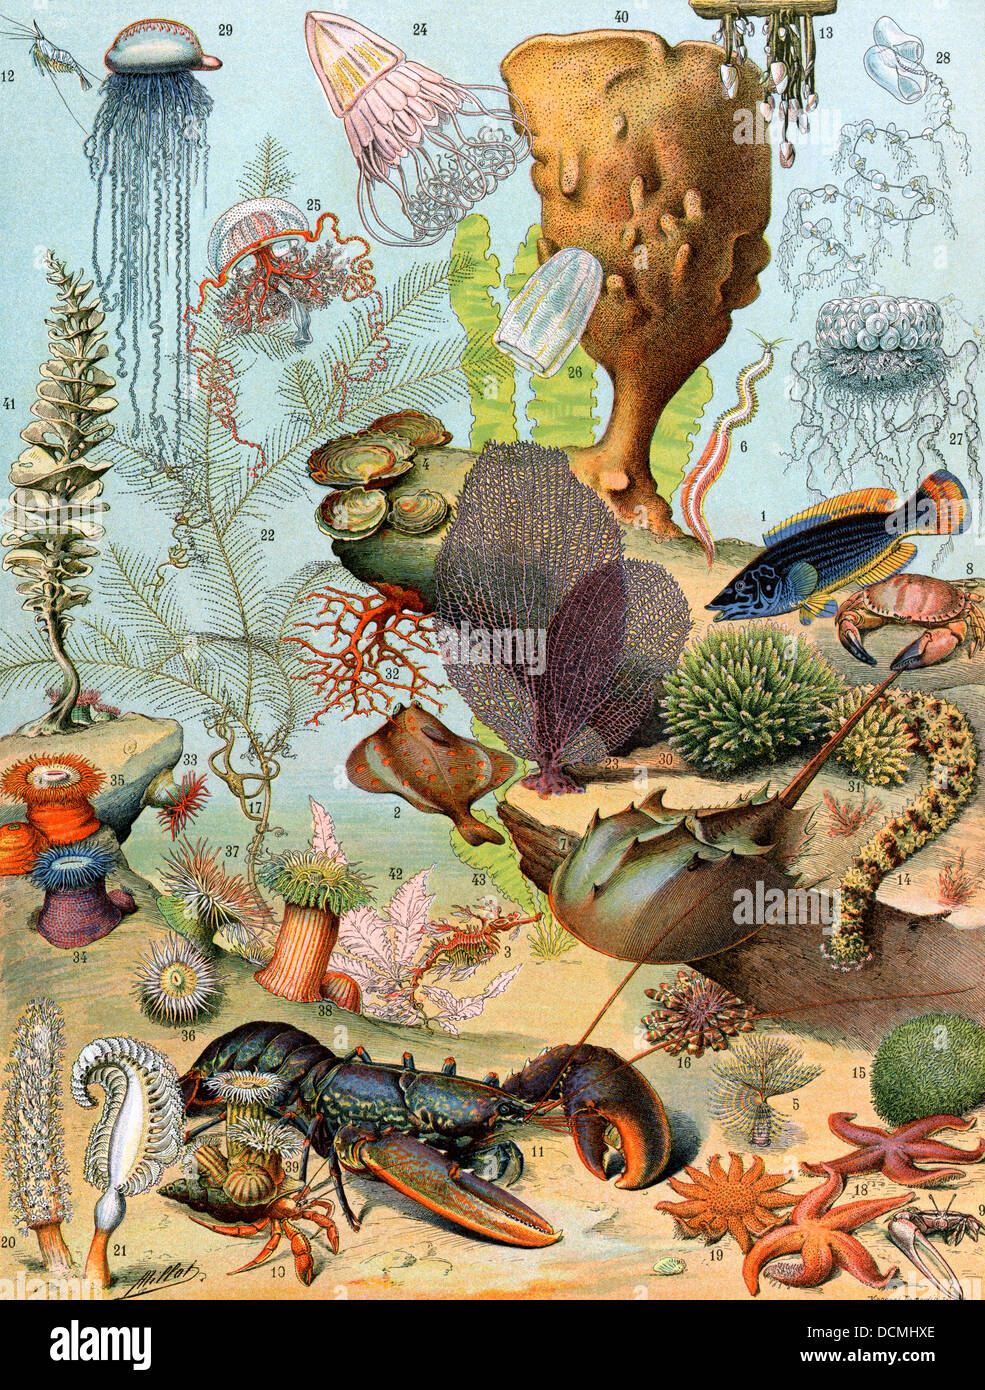 Life on the sea floor, including crustaceans and molluscs. Stock Photo